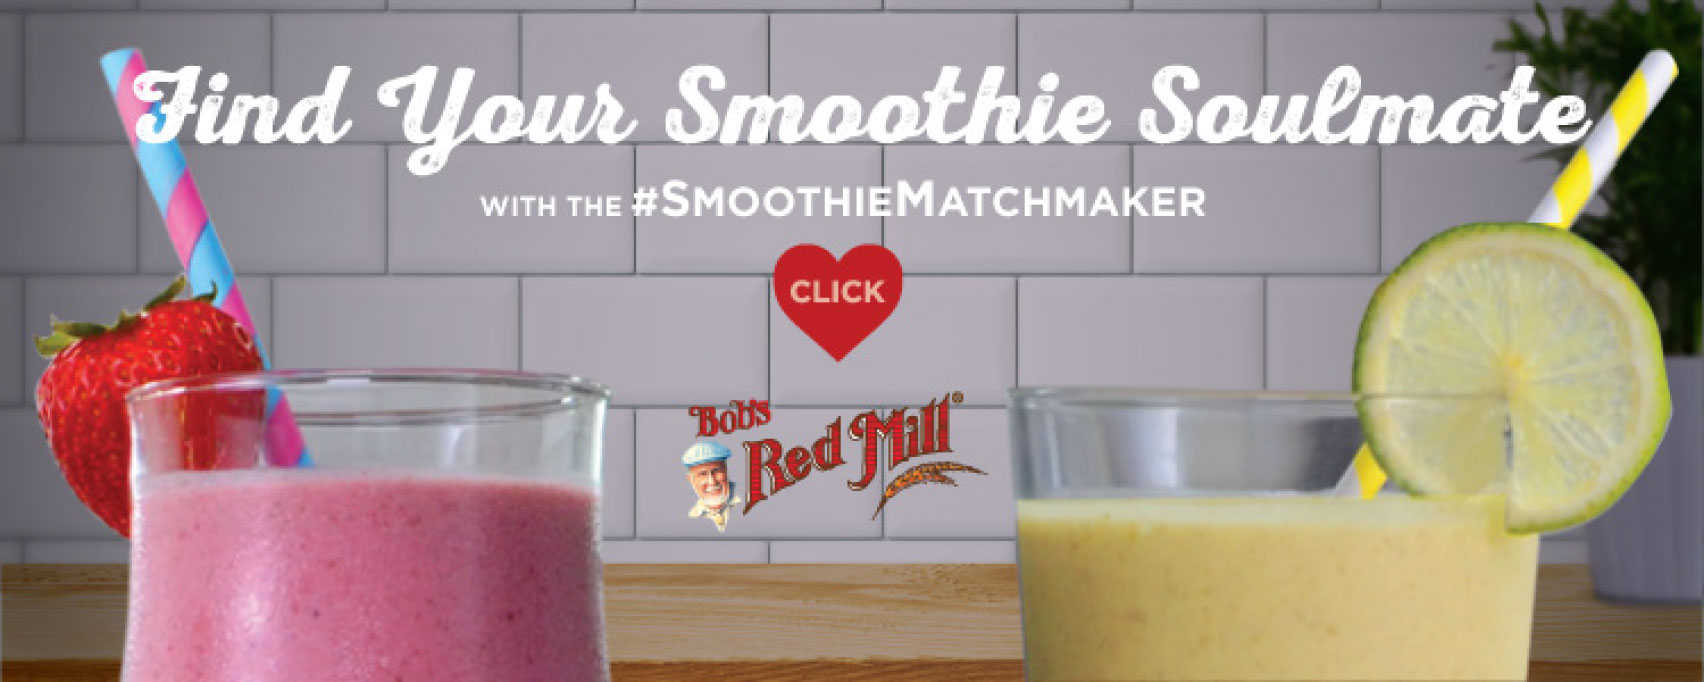 Bob's Red Mill Smoothie Matchmaker